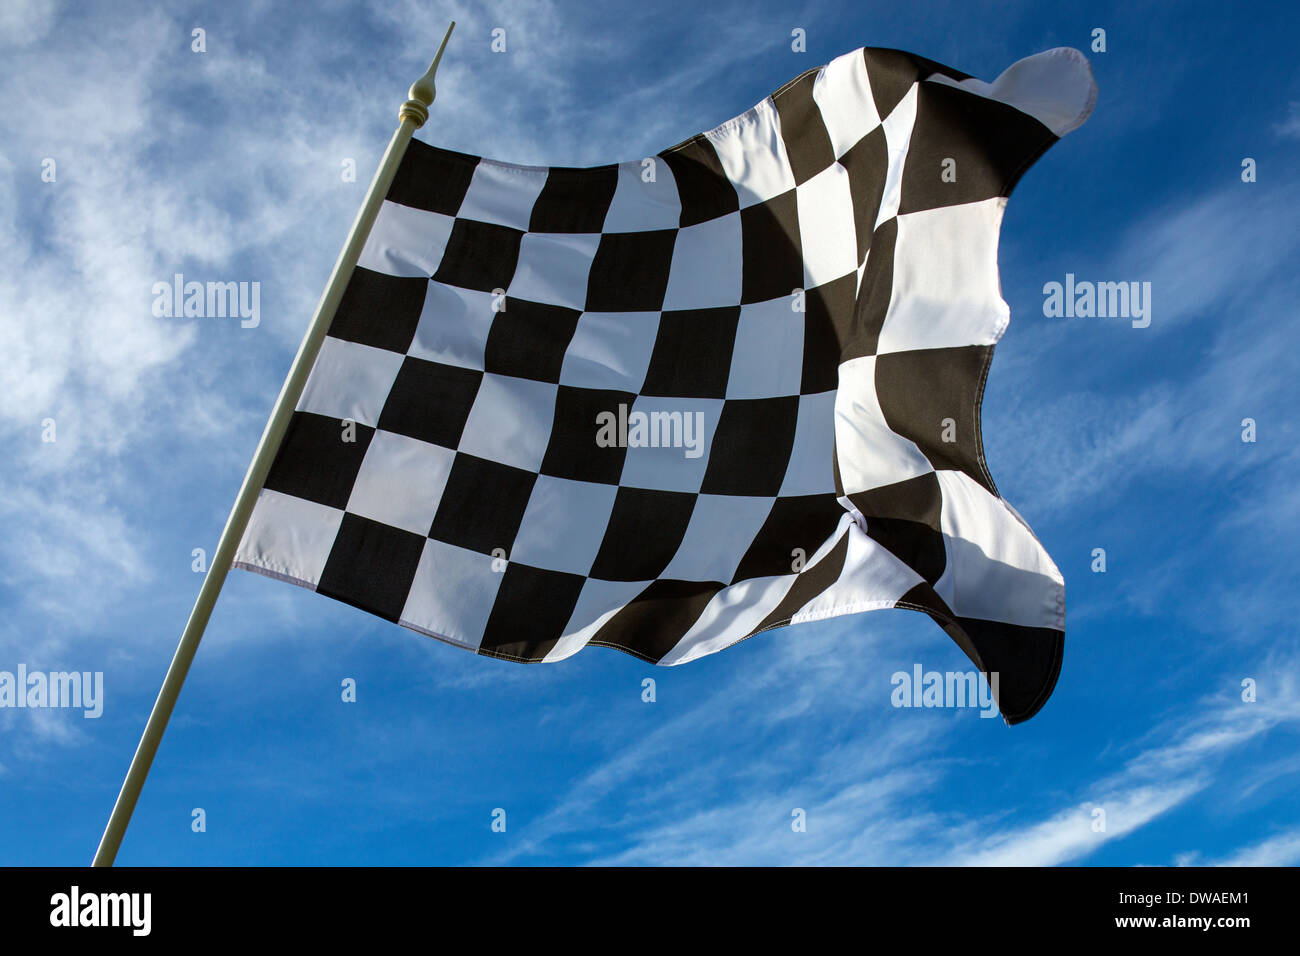 Chequered Flag - Winner. - Stock Image